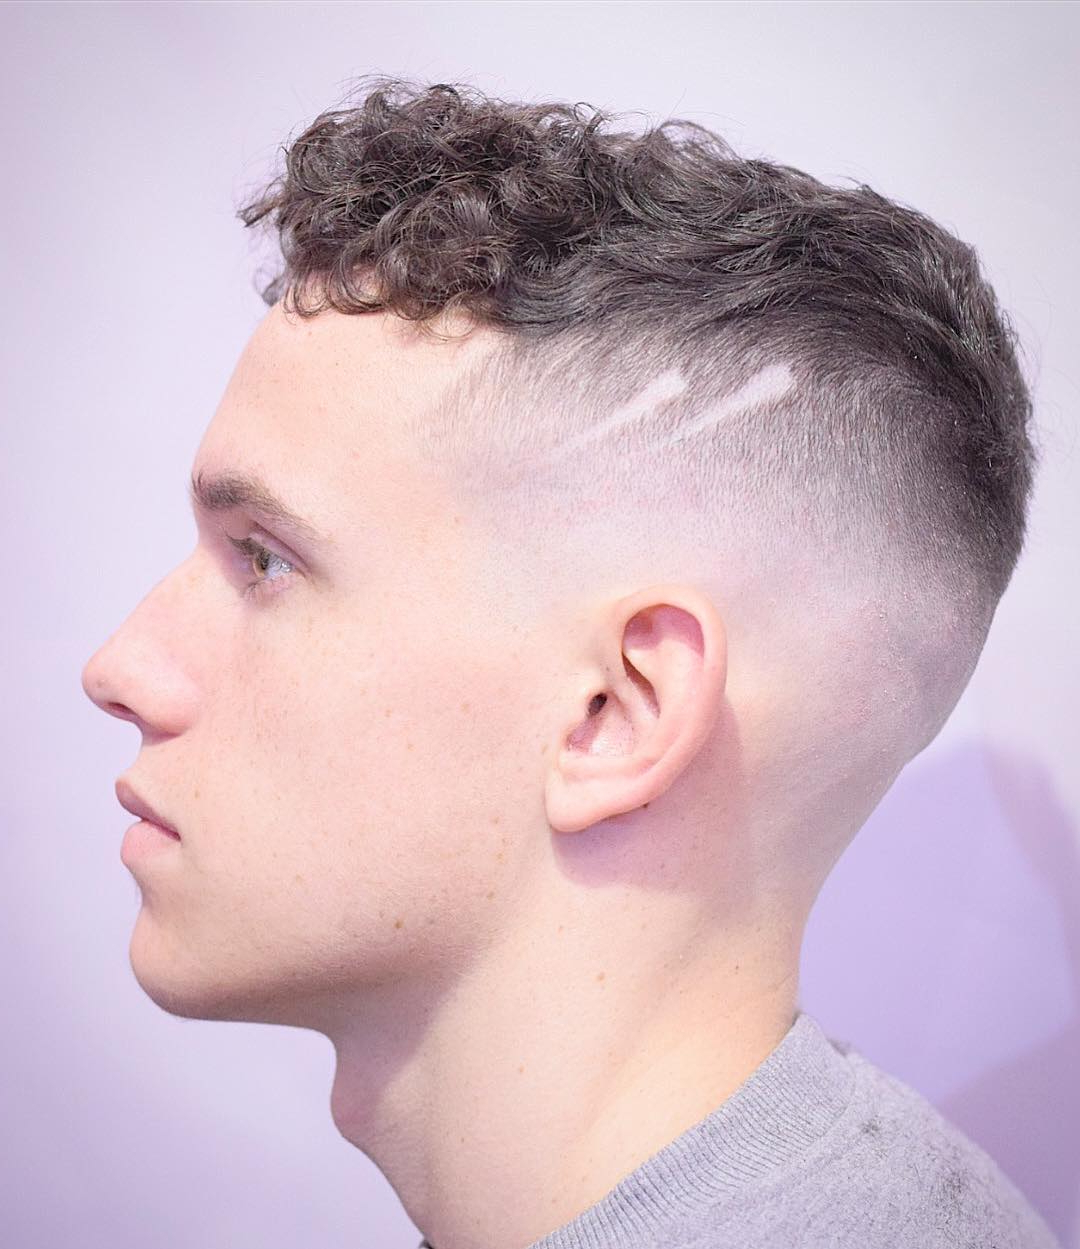 Cool Haircuts With Shaved Sides In Short Haircuts With Shaved Sides (View 15 of 25)